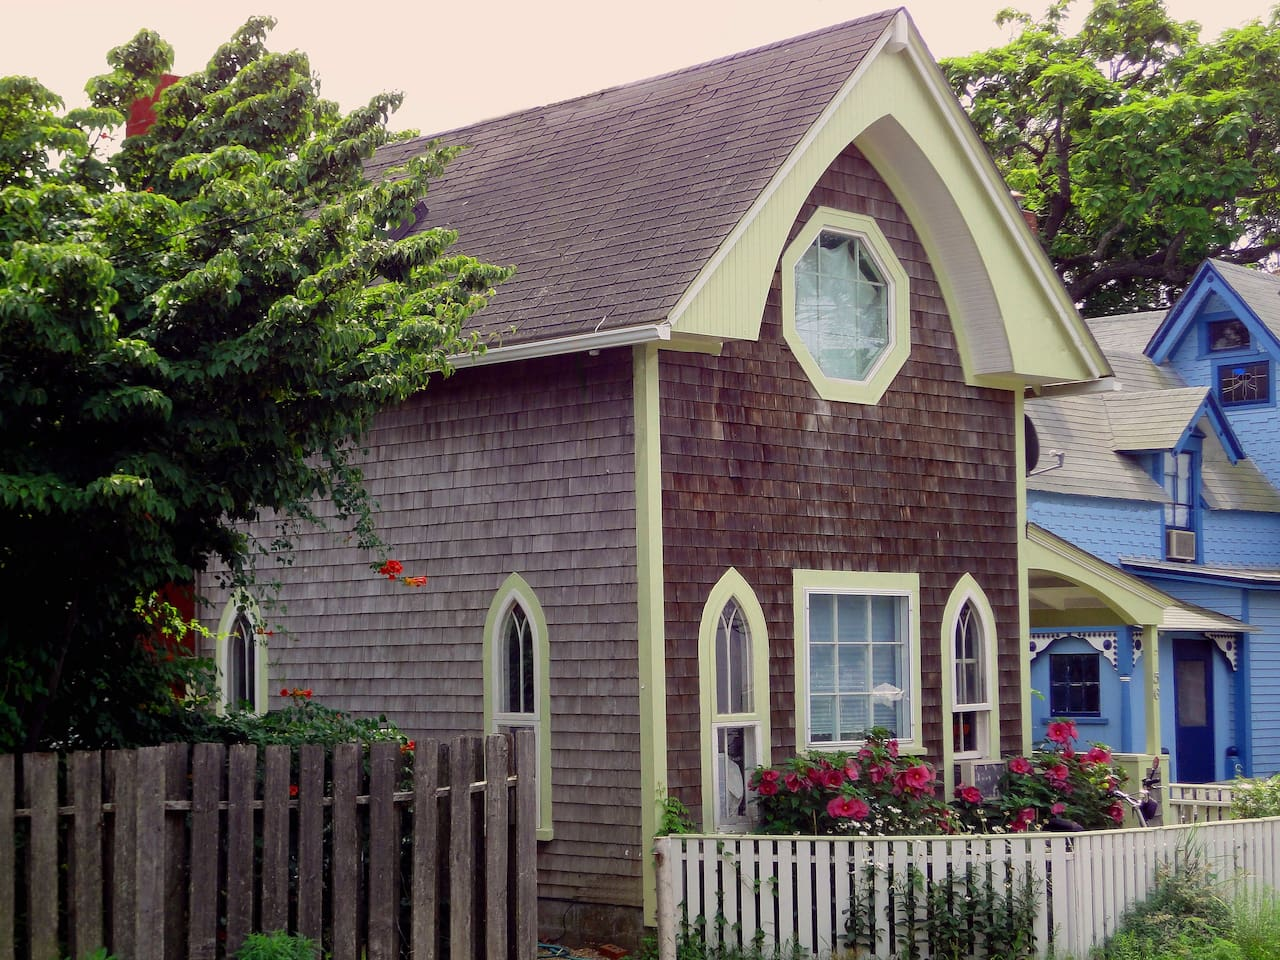 In-Town, By Beach Impeccably Renovated Historic Cottage with Gardens, Patio, and Proximity to All Oak Bluffs Wonders. Ruby Glass Arched Windows.